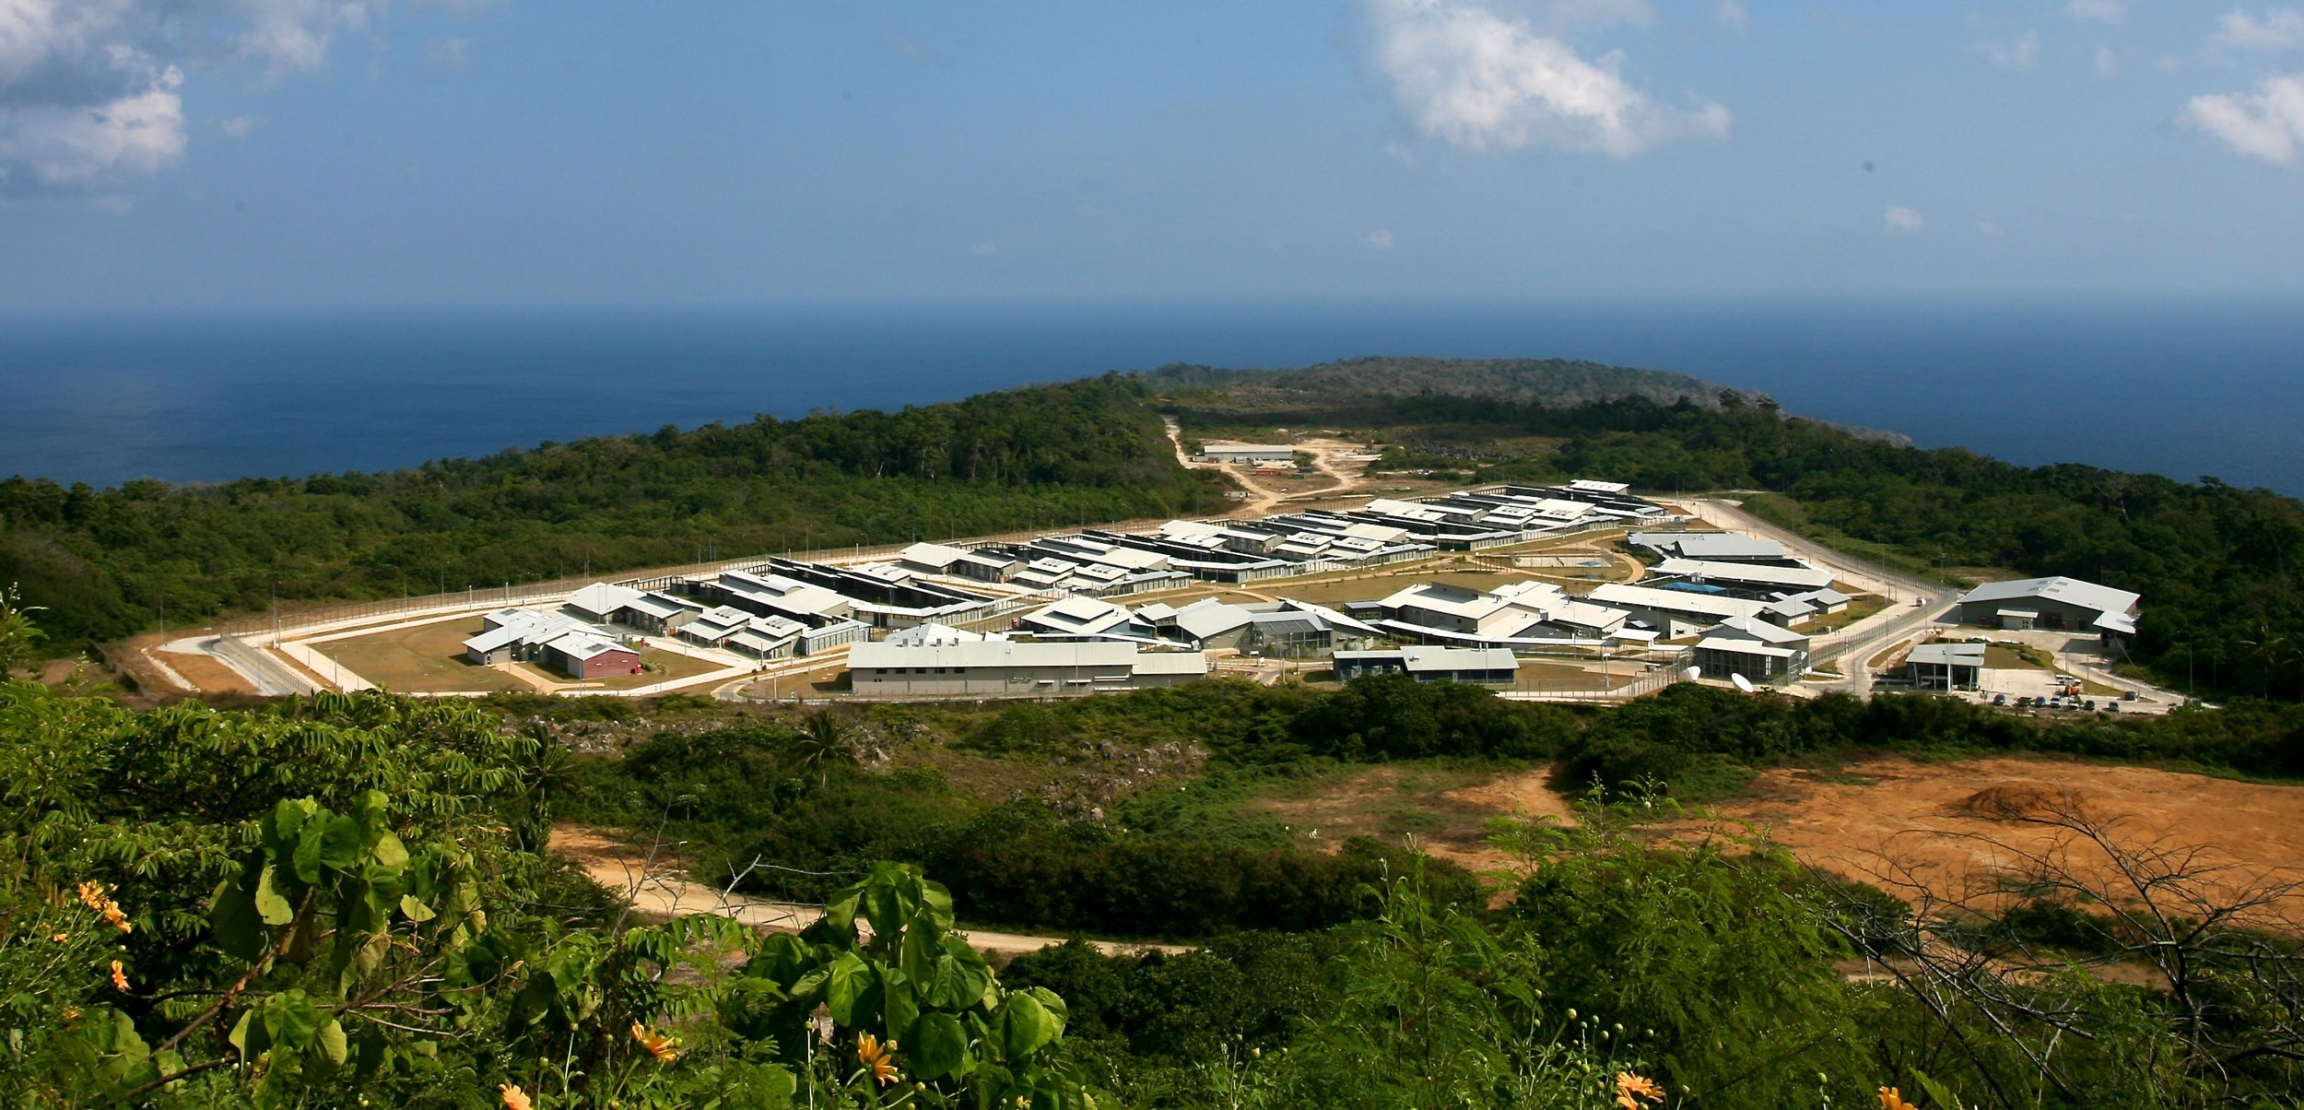 An aerial view of a detention center